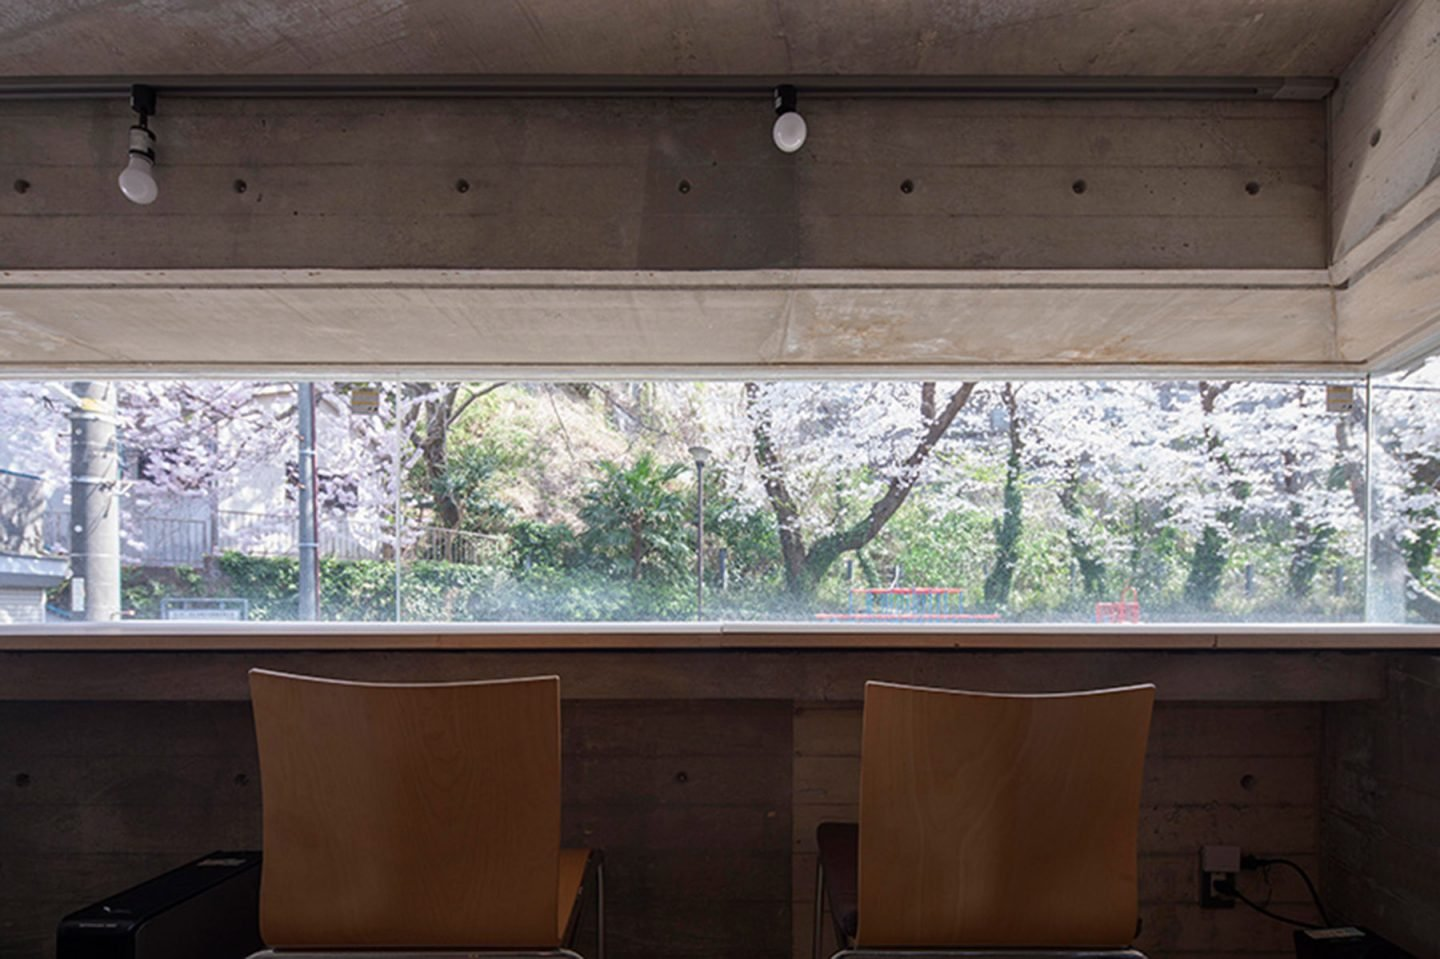 iGNANT-Architecture-Shinsuke-Fuji-Architects-Oriel-Window-House-Office-Japan-005